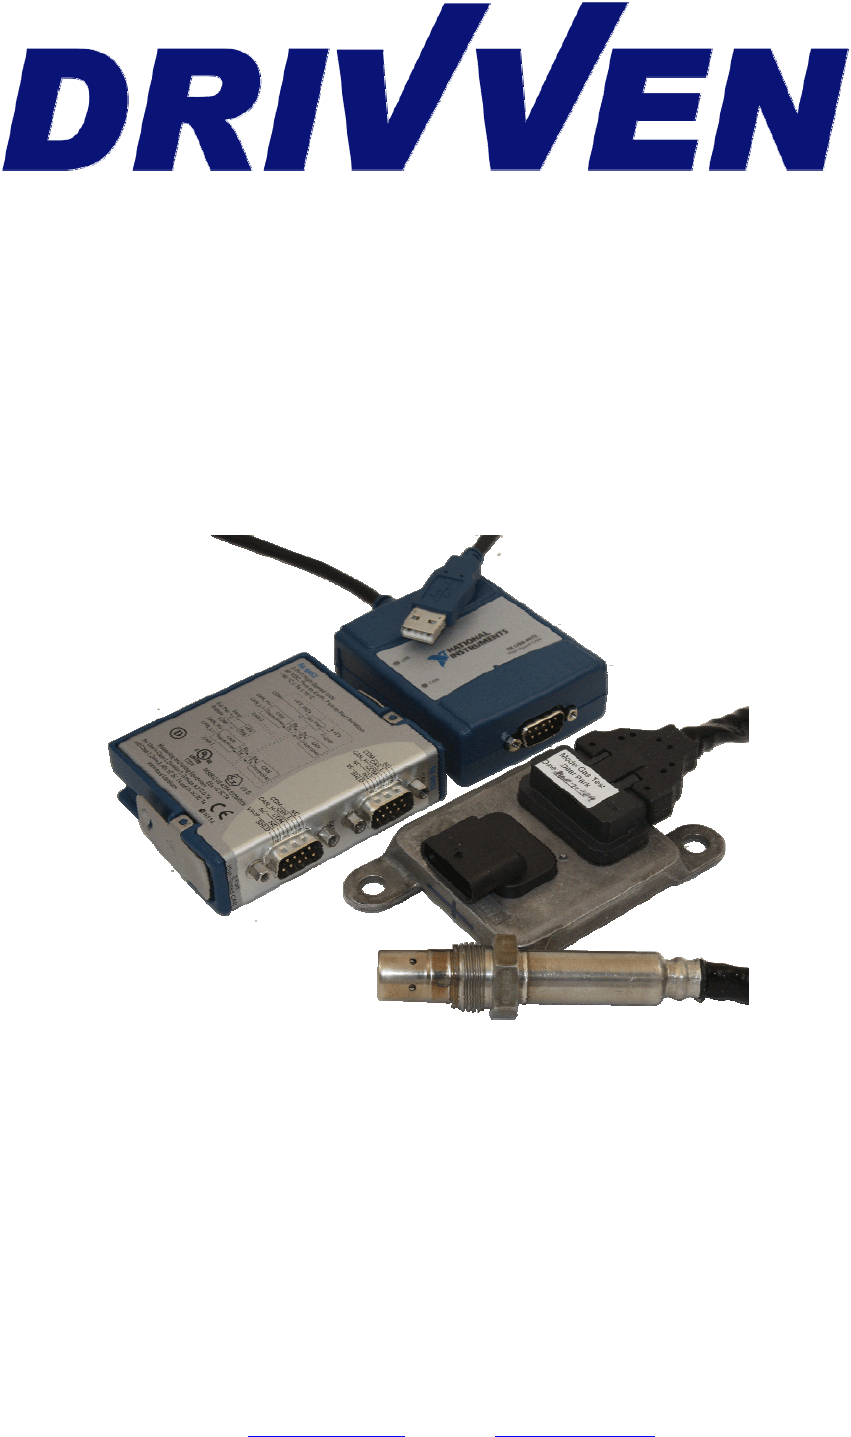 Compactrio System On Module Drivven Nox Sensor Kit For Compactrio User Manual National